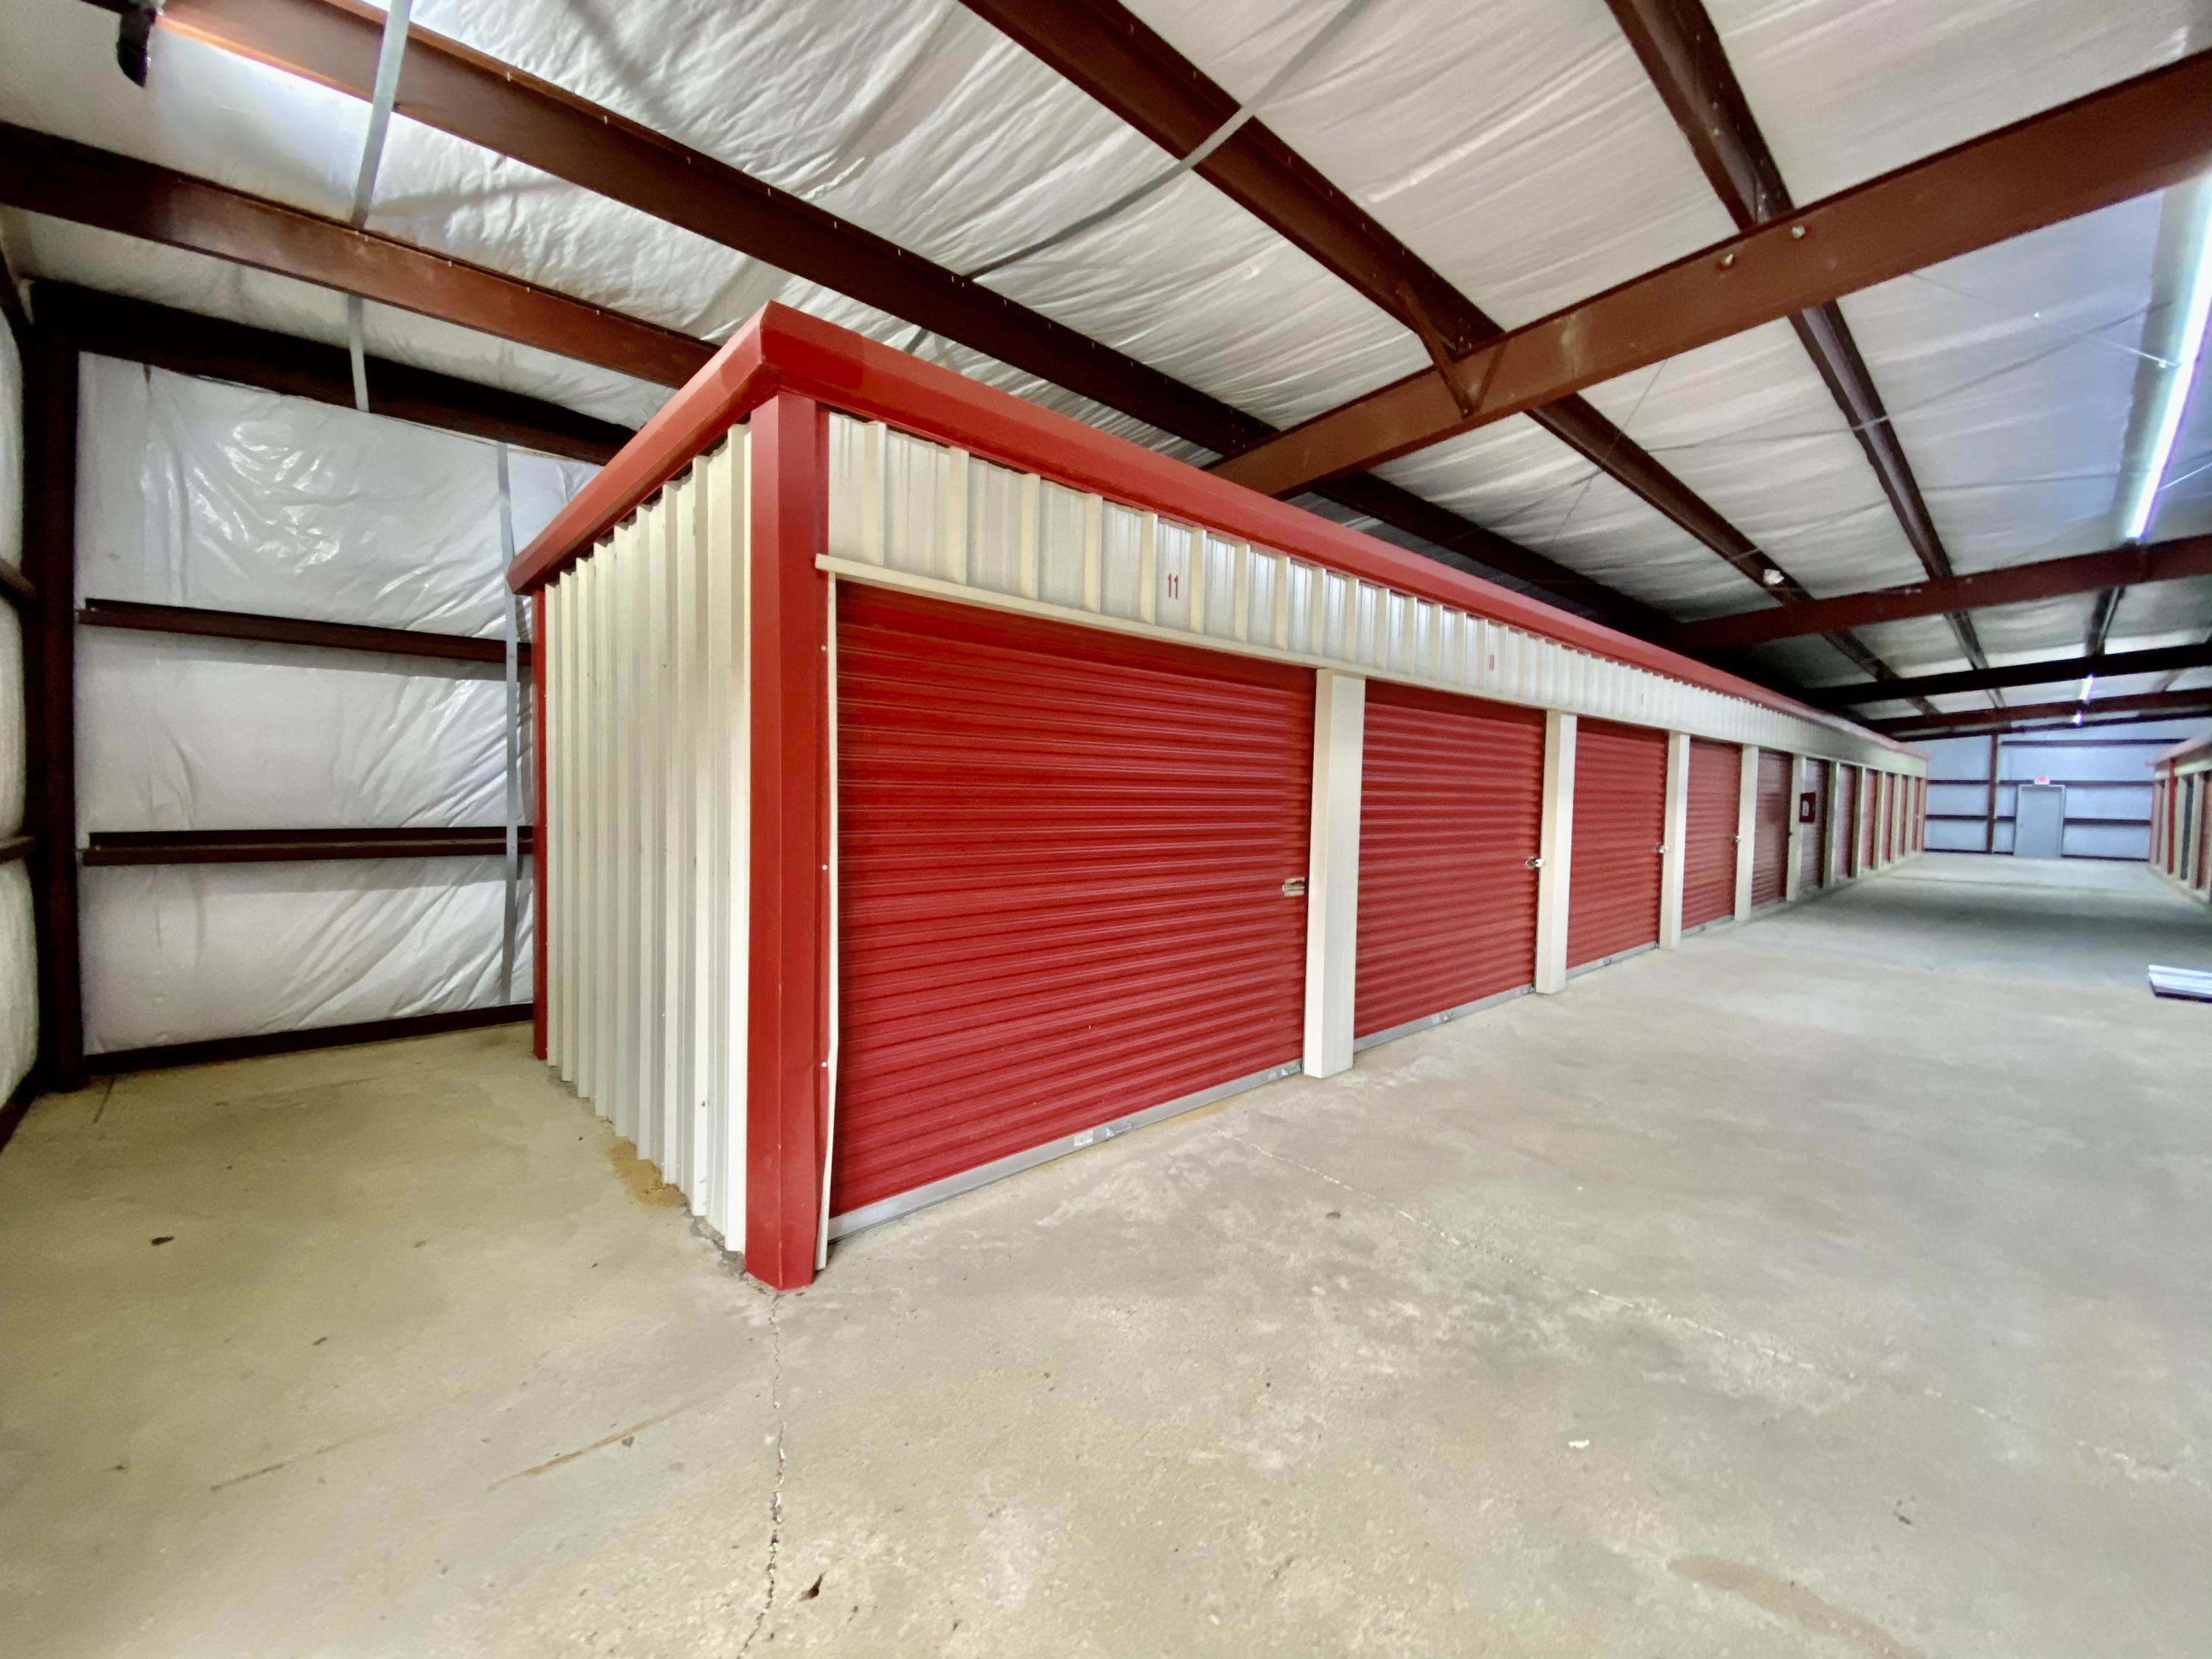 DeRidder commercial property for sale, 200 W 1st St, DeRidder LA - $369,900